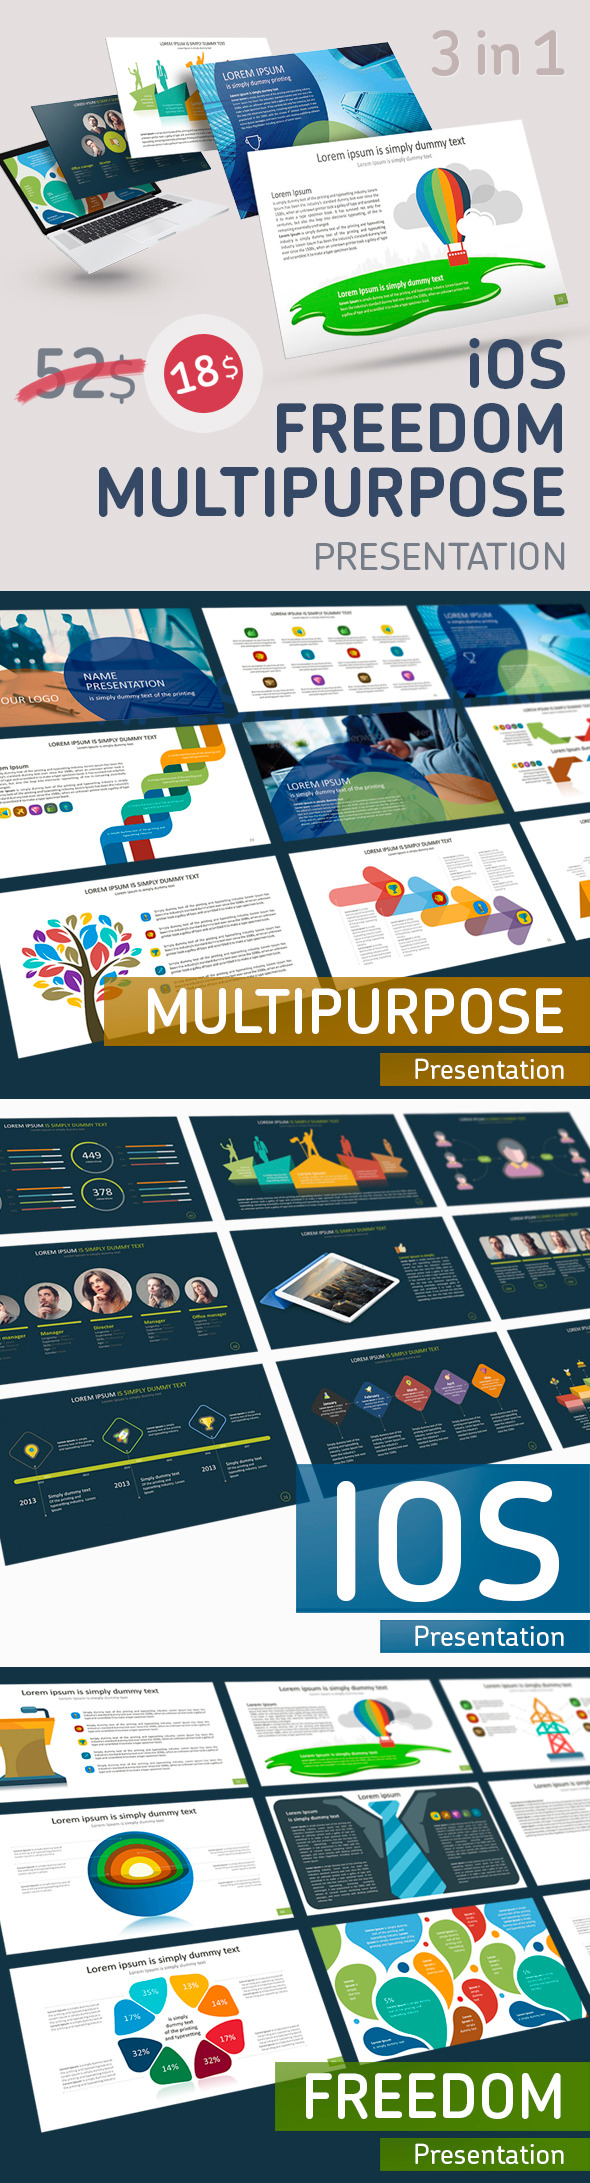 3 in 1 Pack Presentation PowerPoint - Business PowerPoint Templates